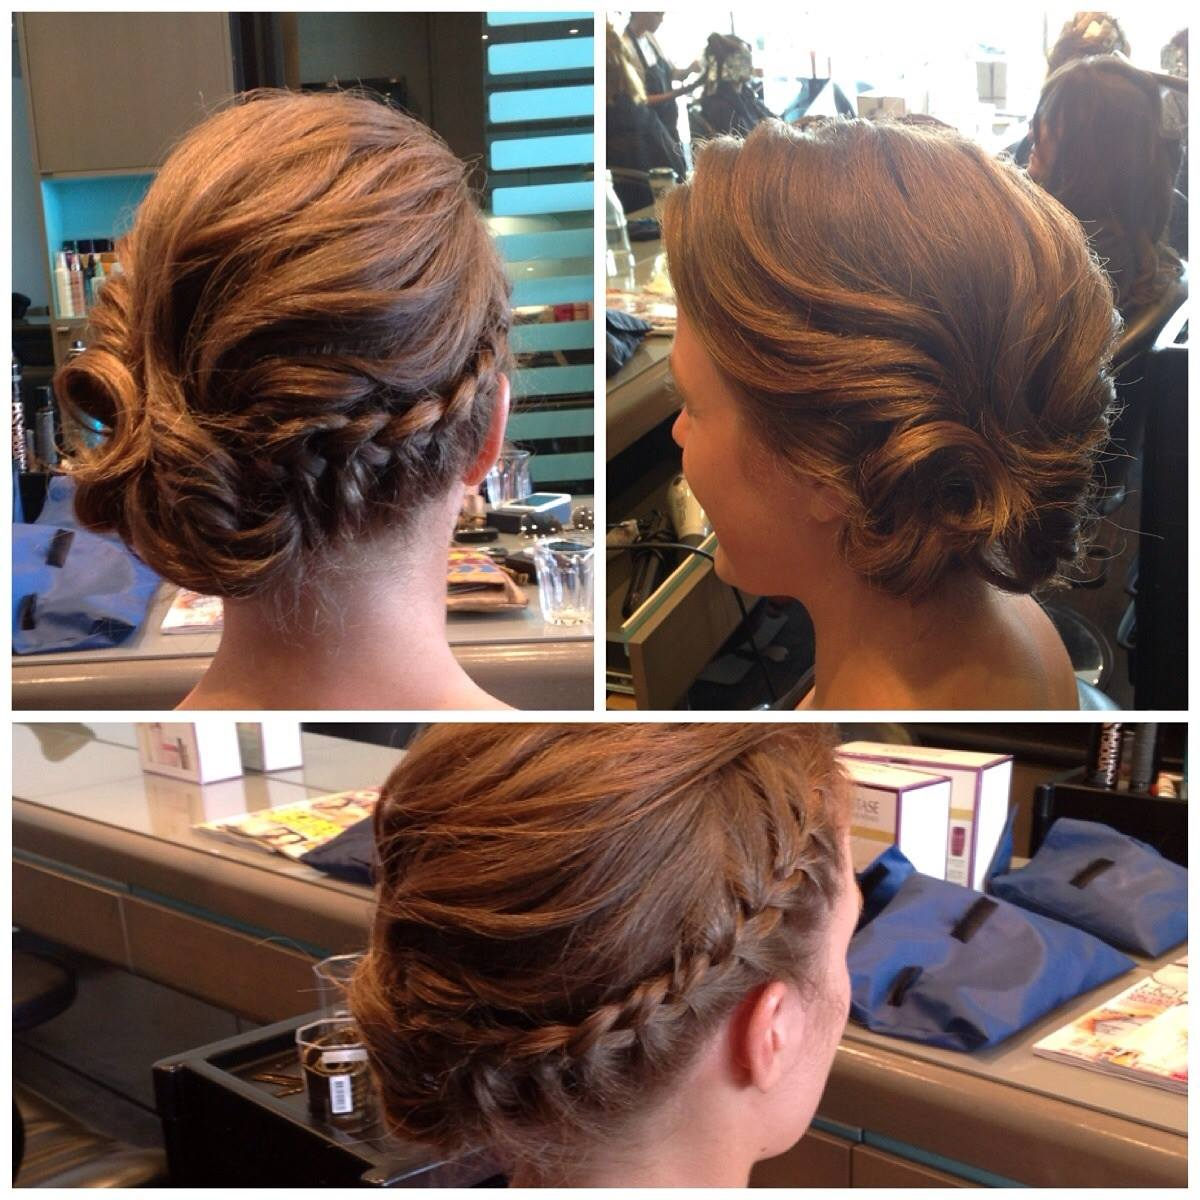 Hairstyling with Tara Steel